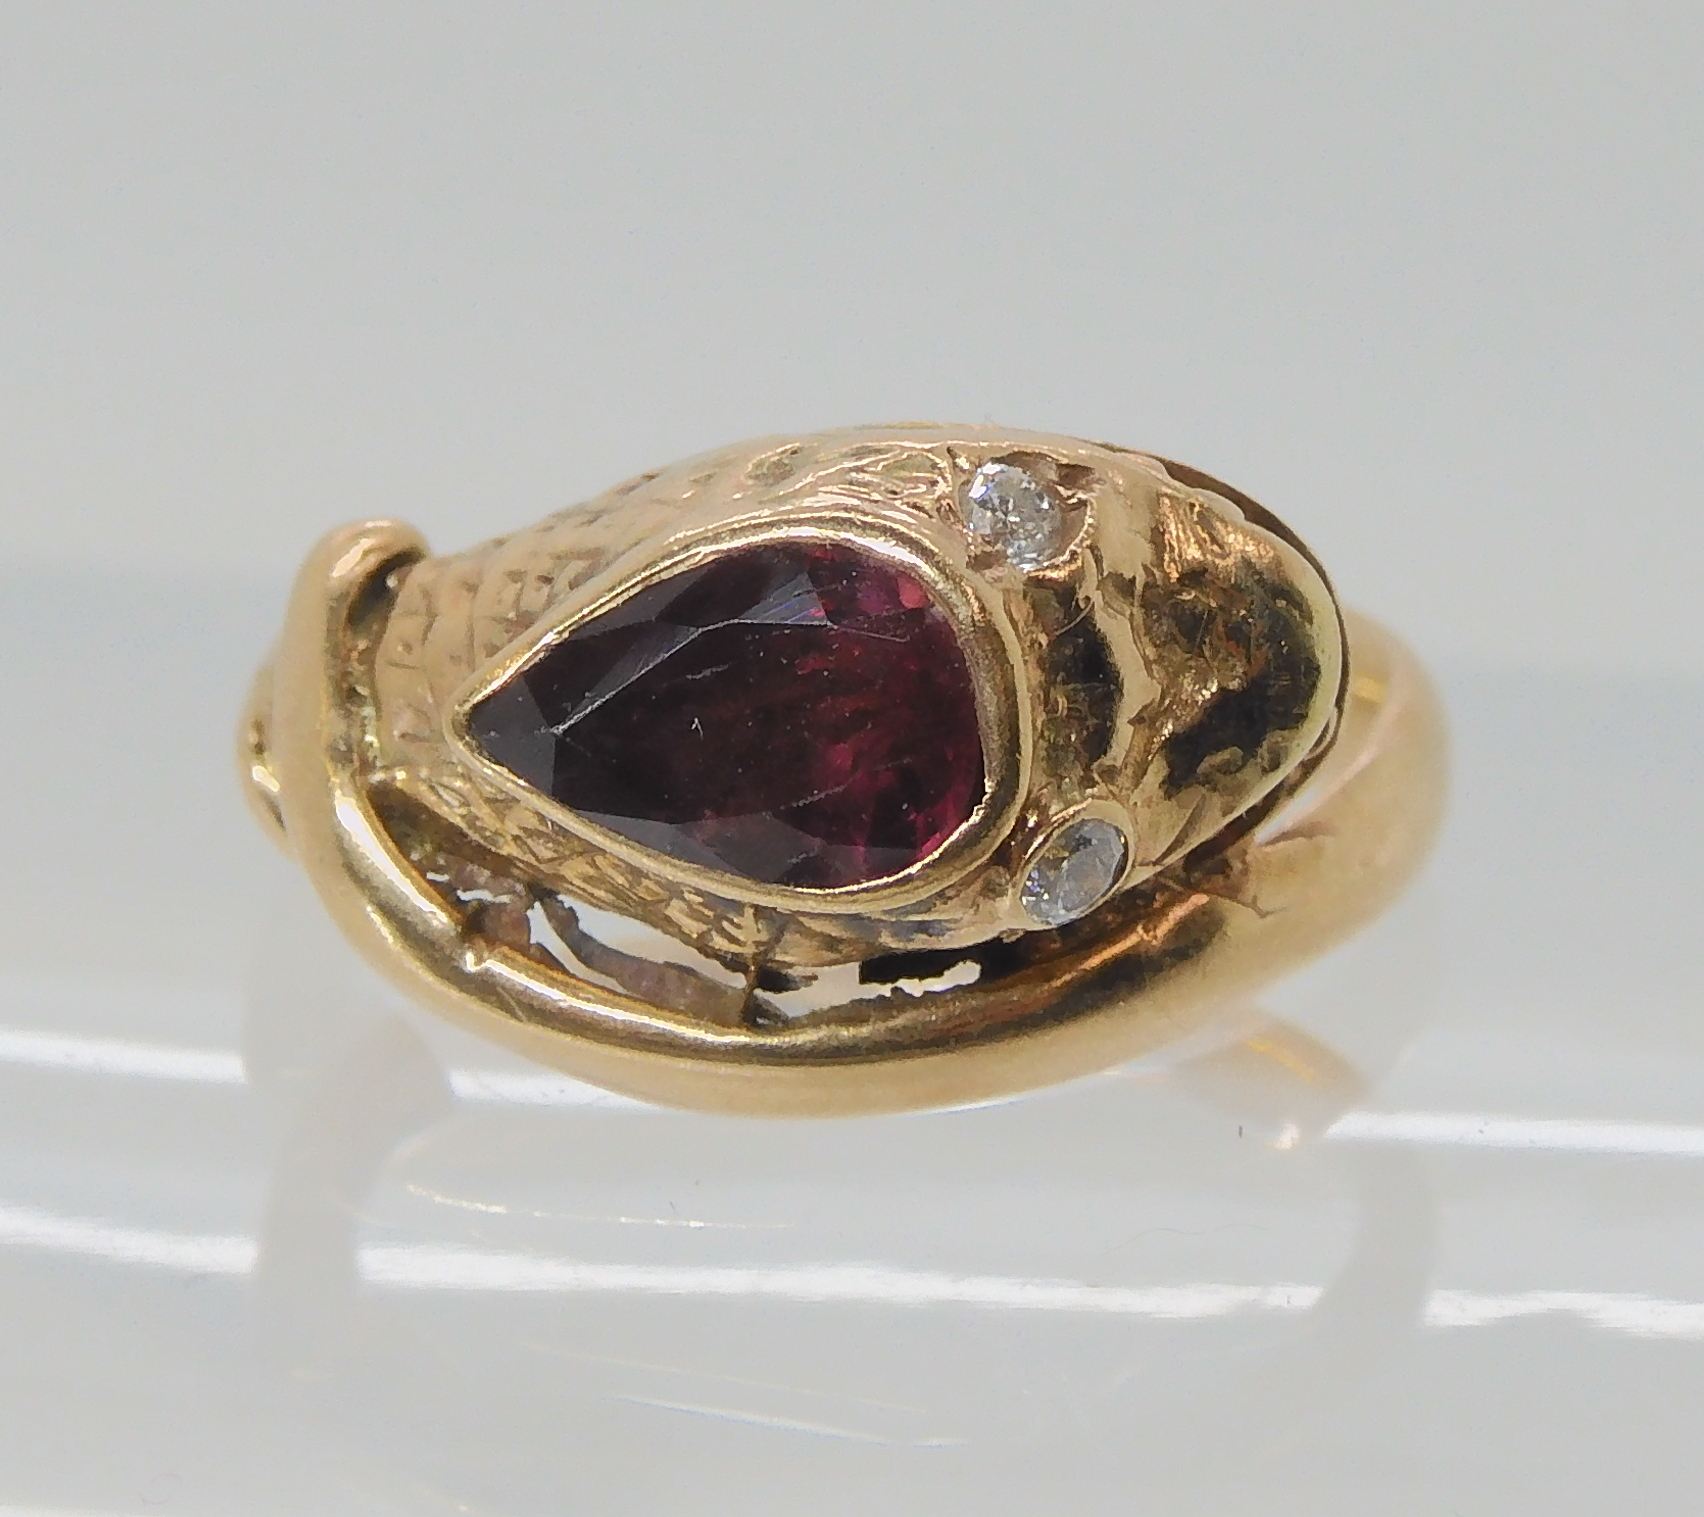 A 9CT ROSE GOLD GARNET AND DIAMOND SNAKE RING finger size J, weight 4.5gms Condition Report: Has